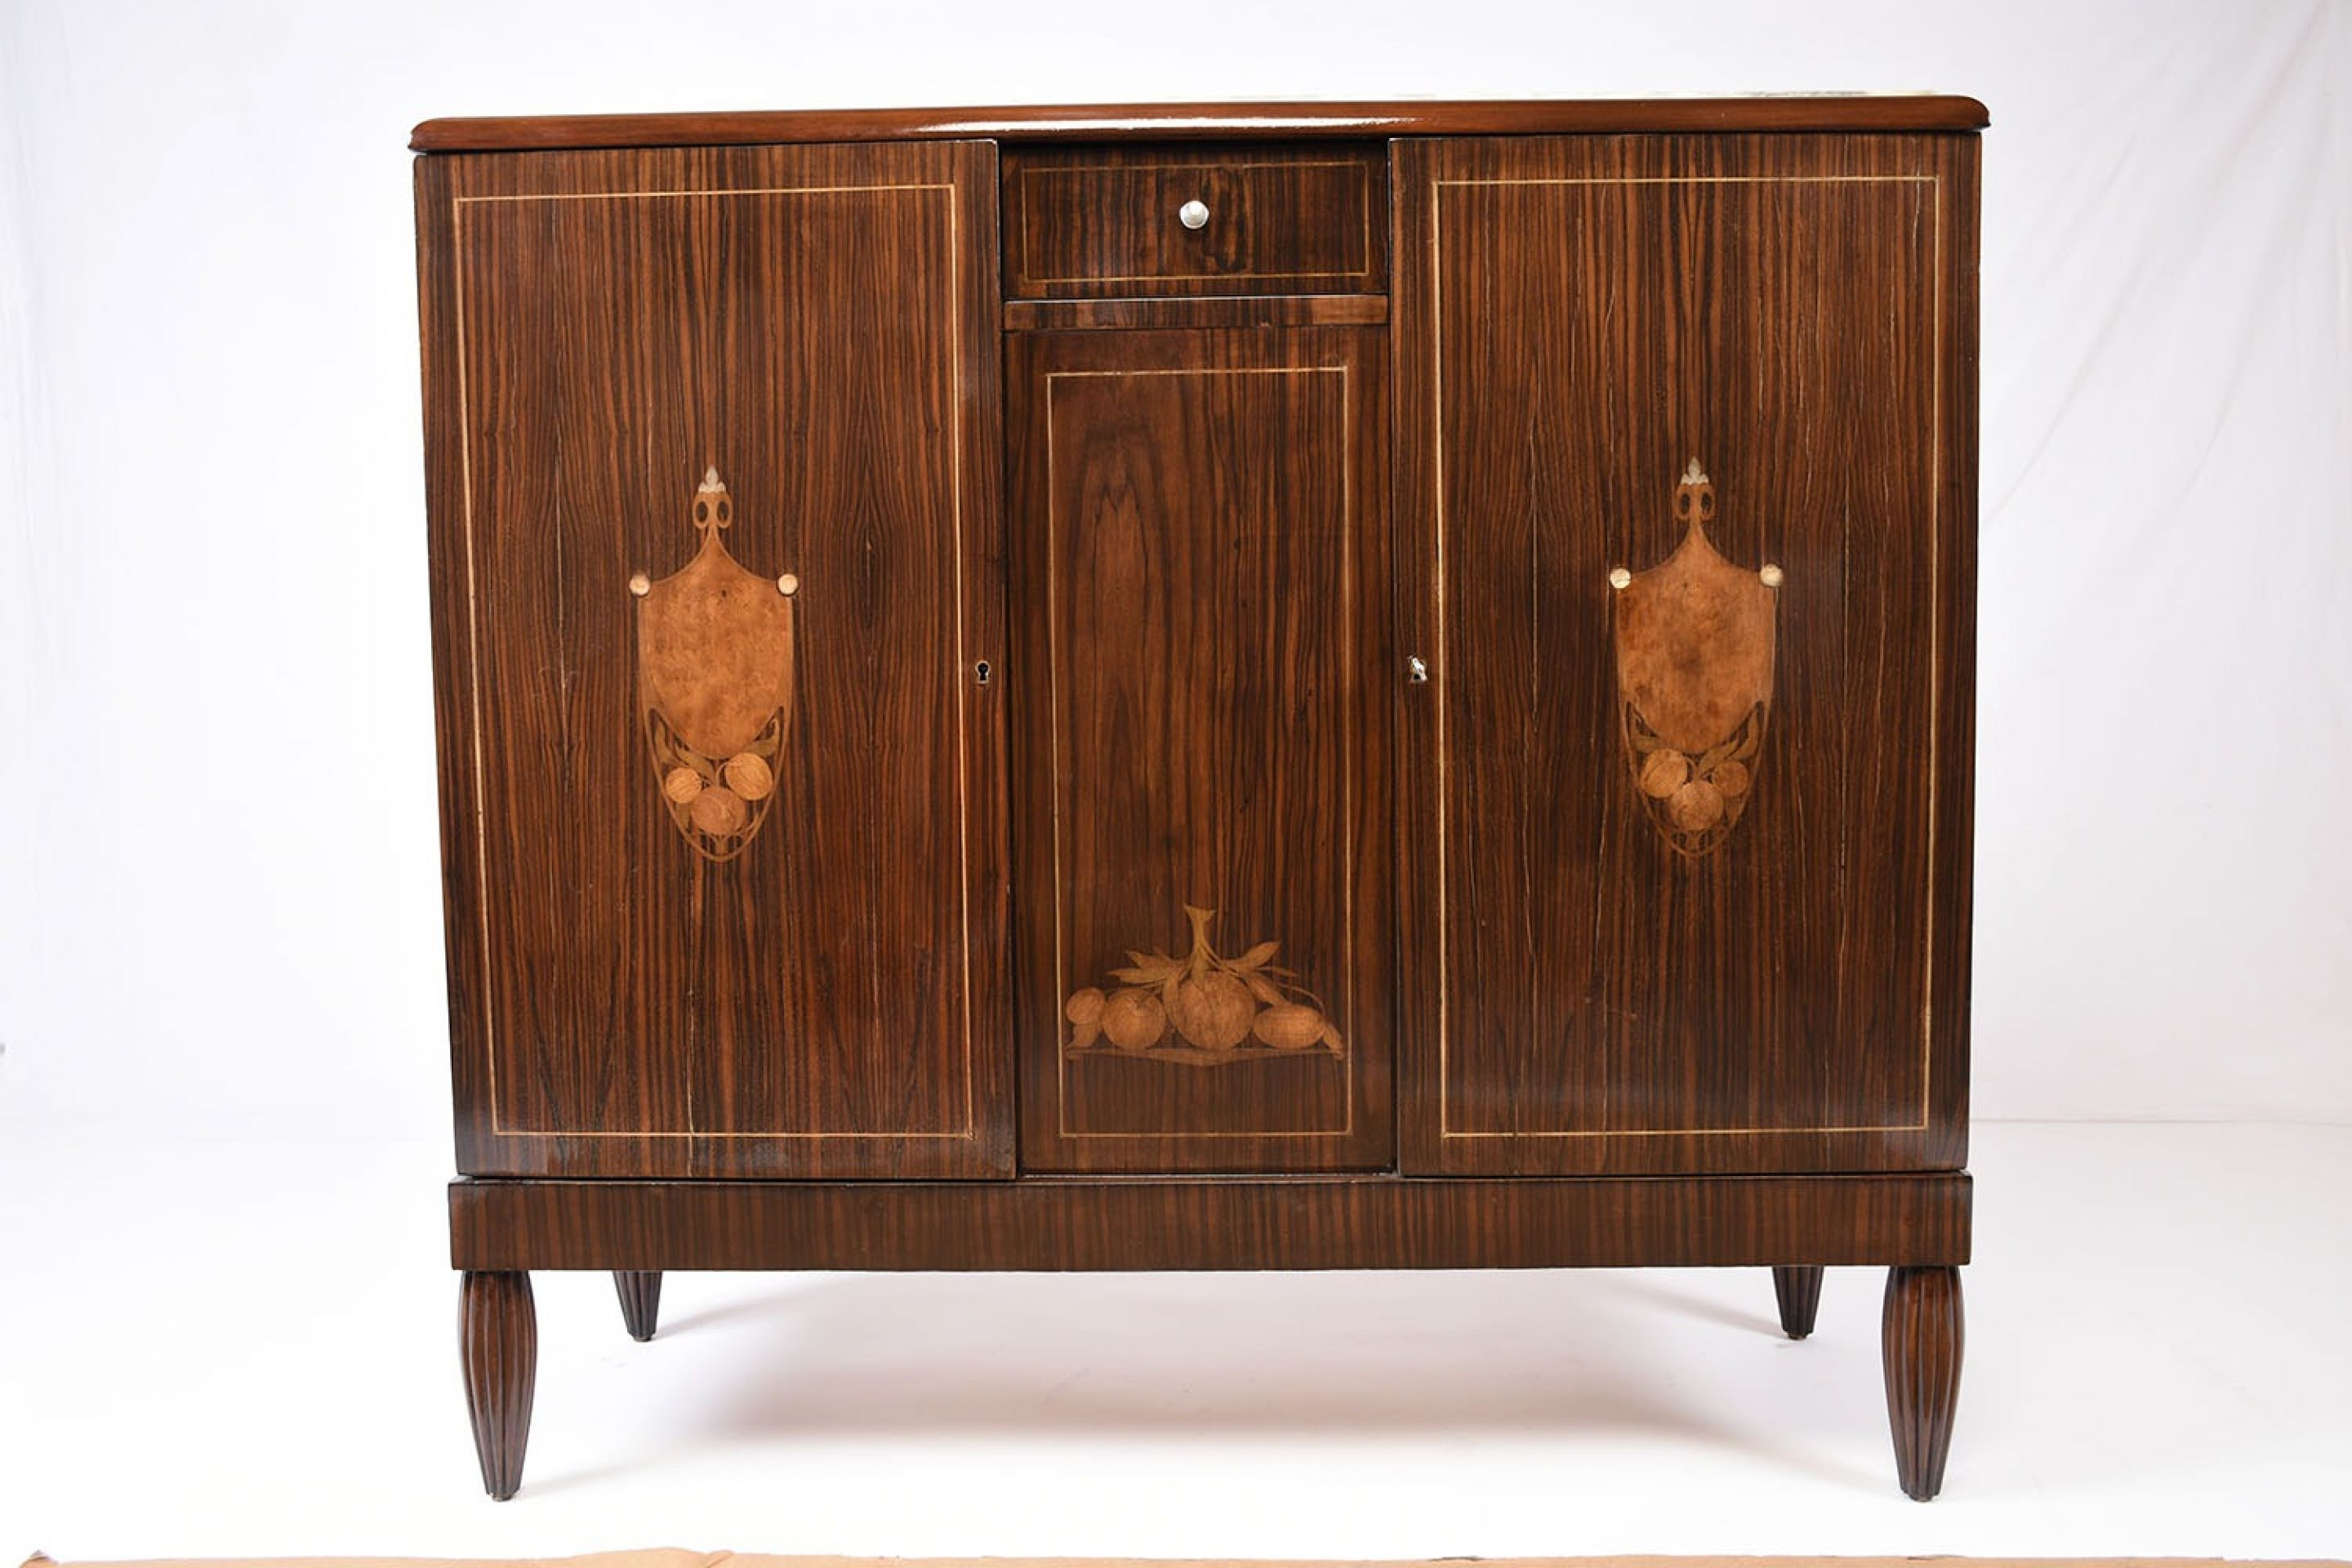 French Art Deco Macassar Buffet or Server